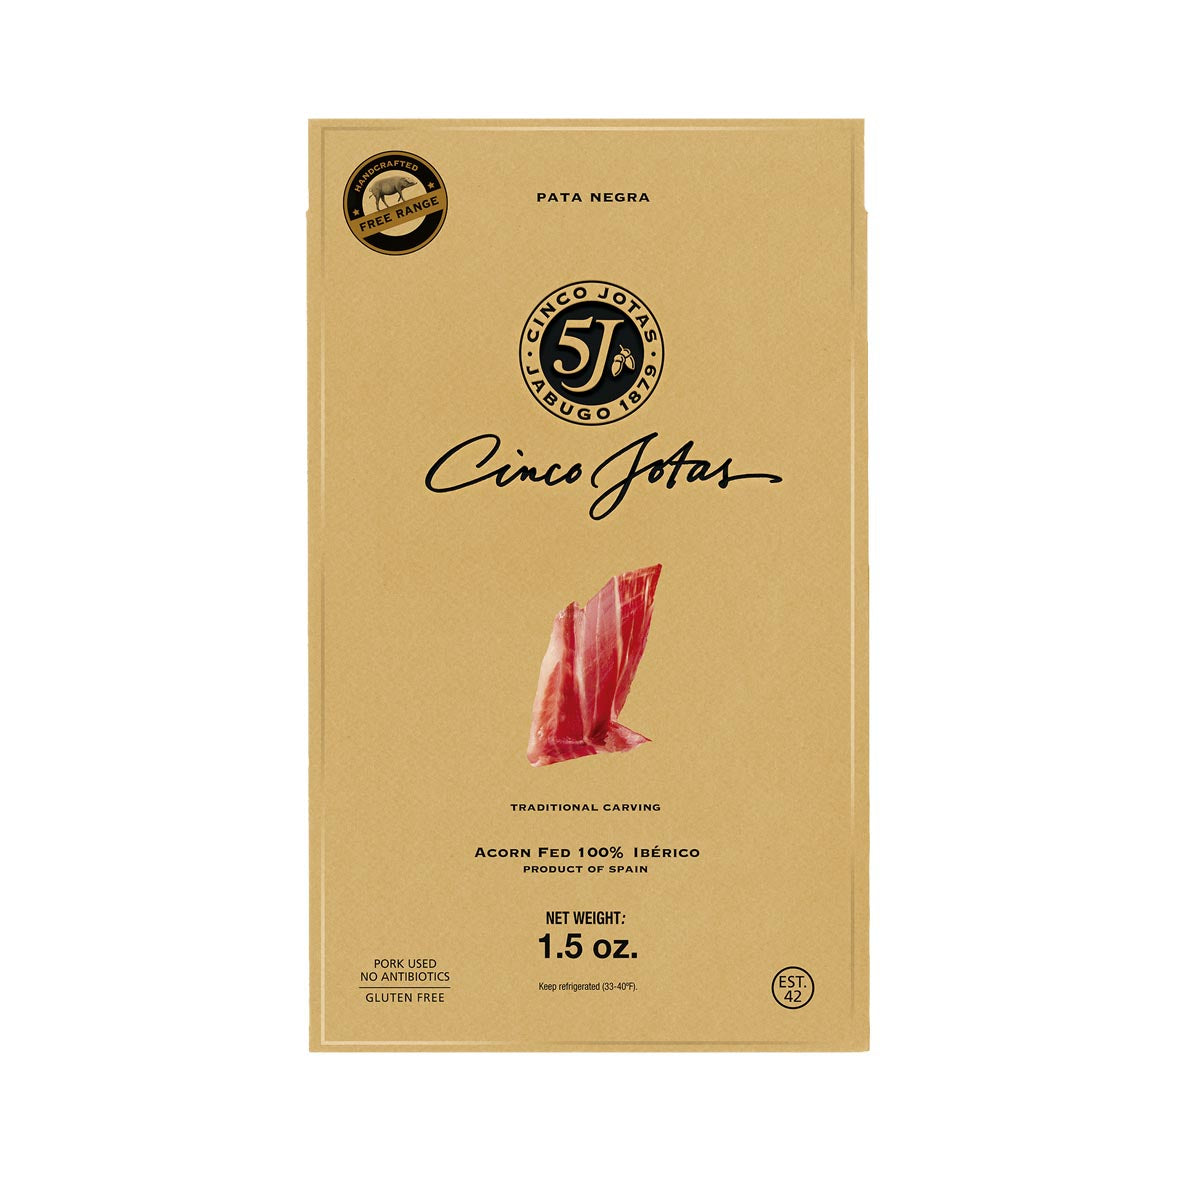 Cinco Jotas Acorn Fed Premium Taste 100% Iberico Pork Shoulder (Traditional Carving) - 1.5 oz. by Castevia Imports